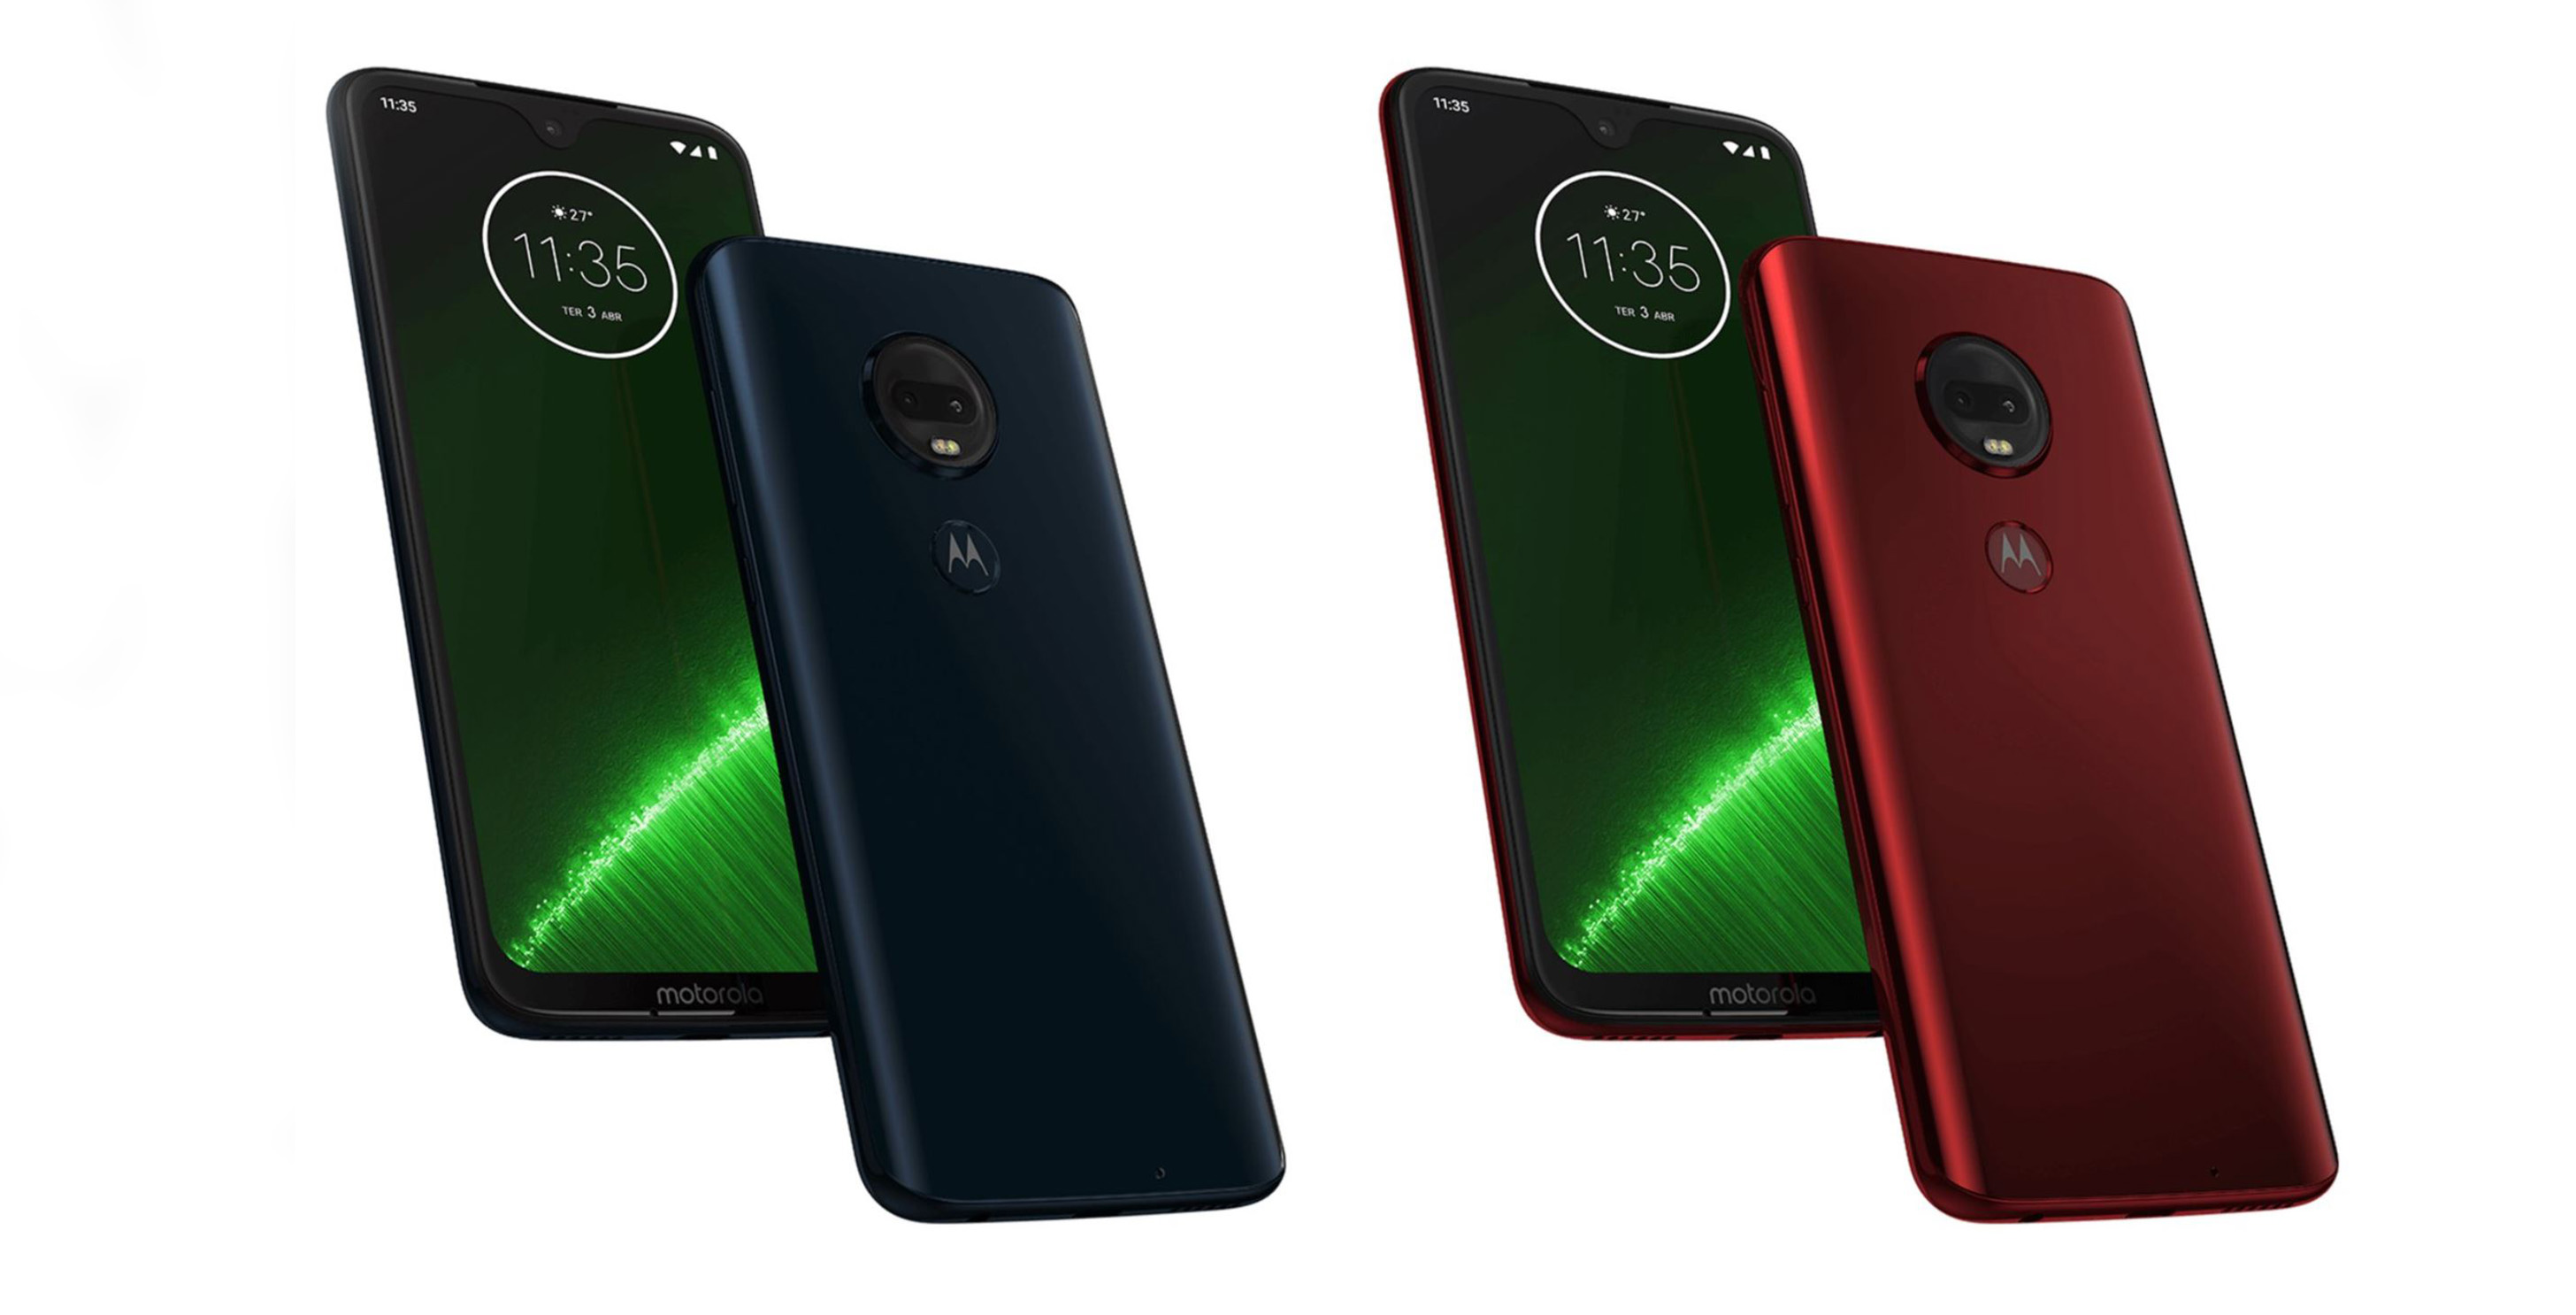 Moto G7 images, specs, pricing and a benchmark have leaked